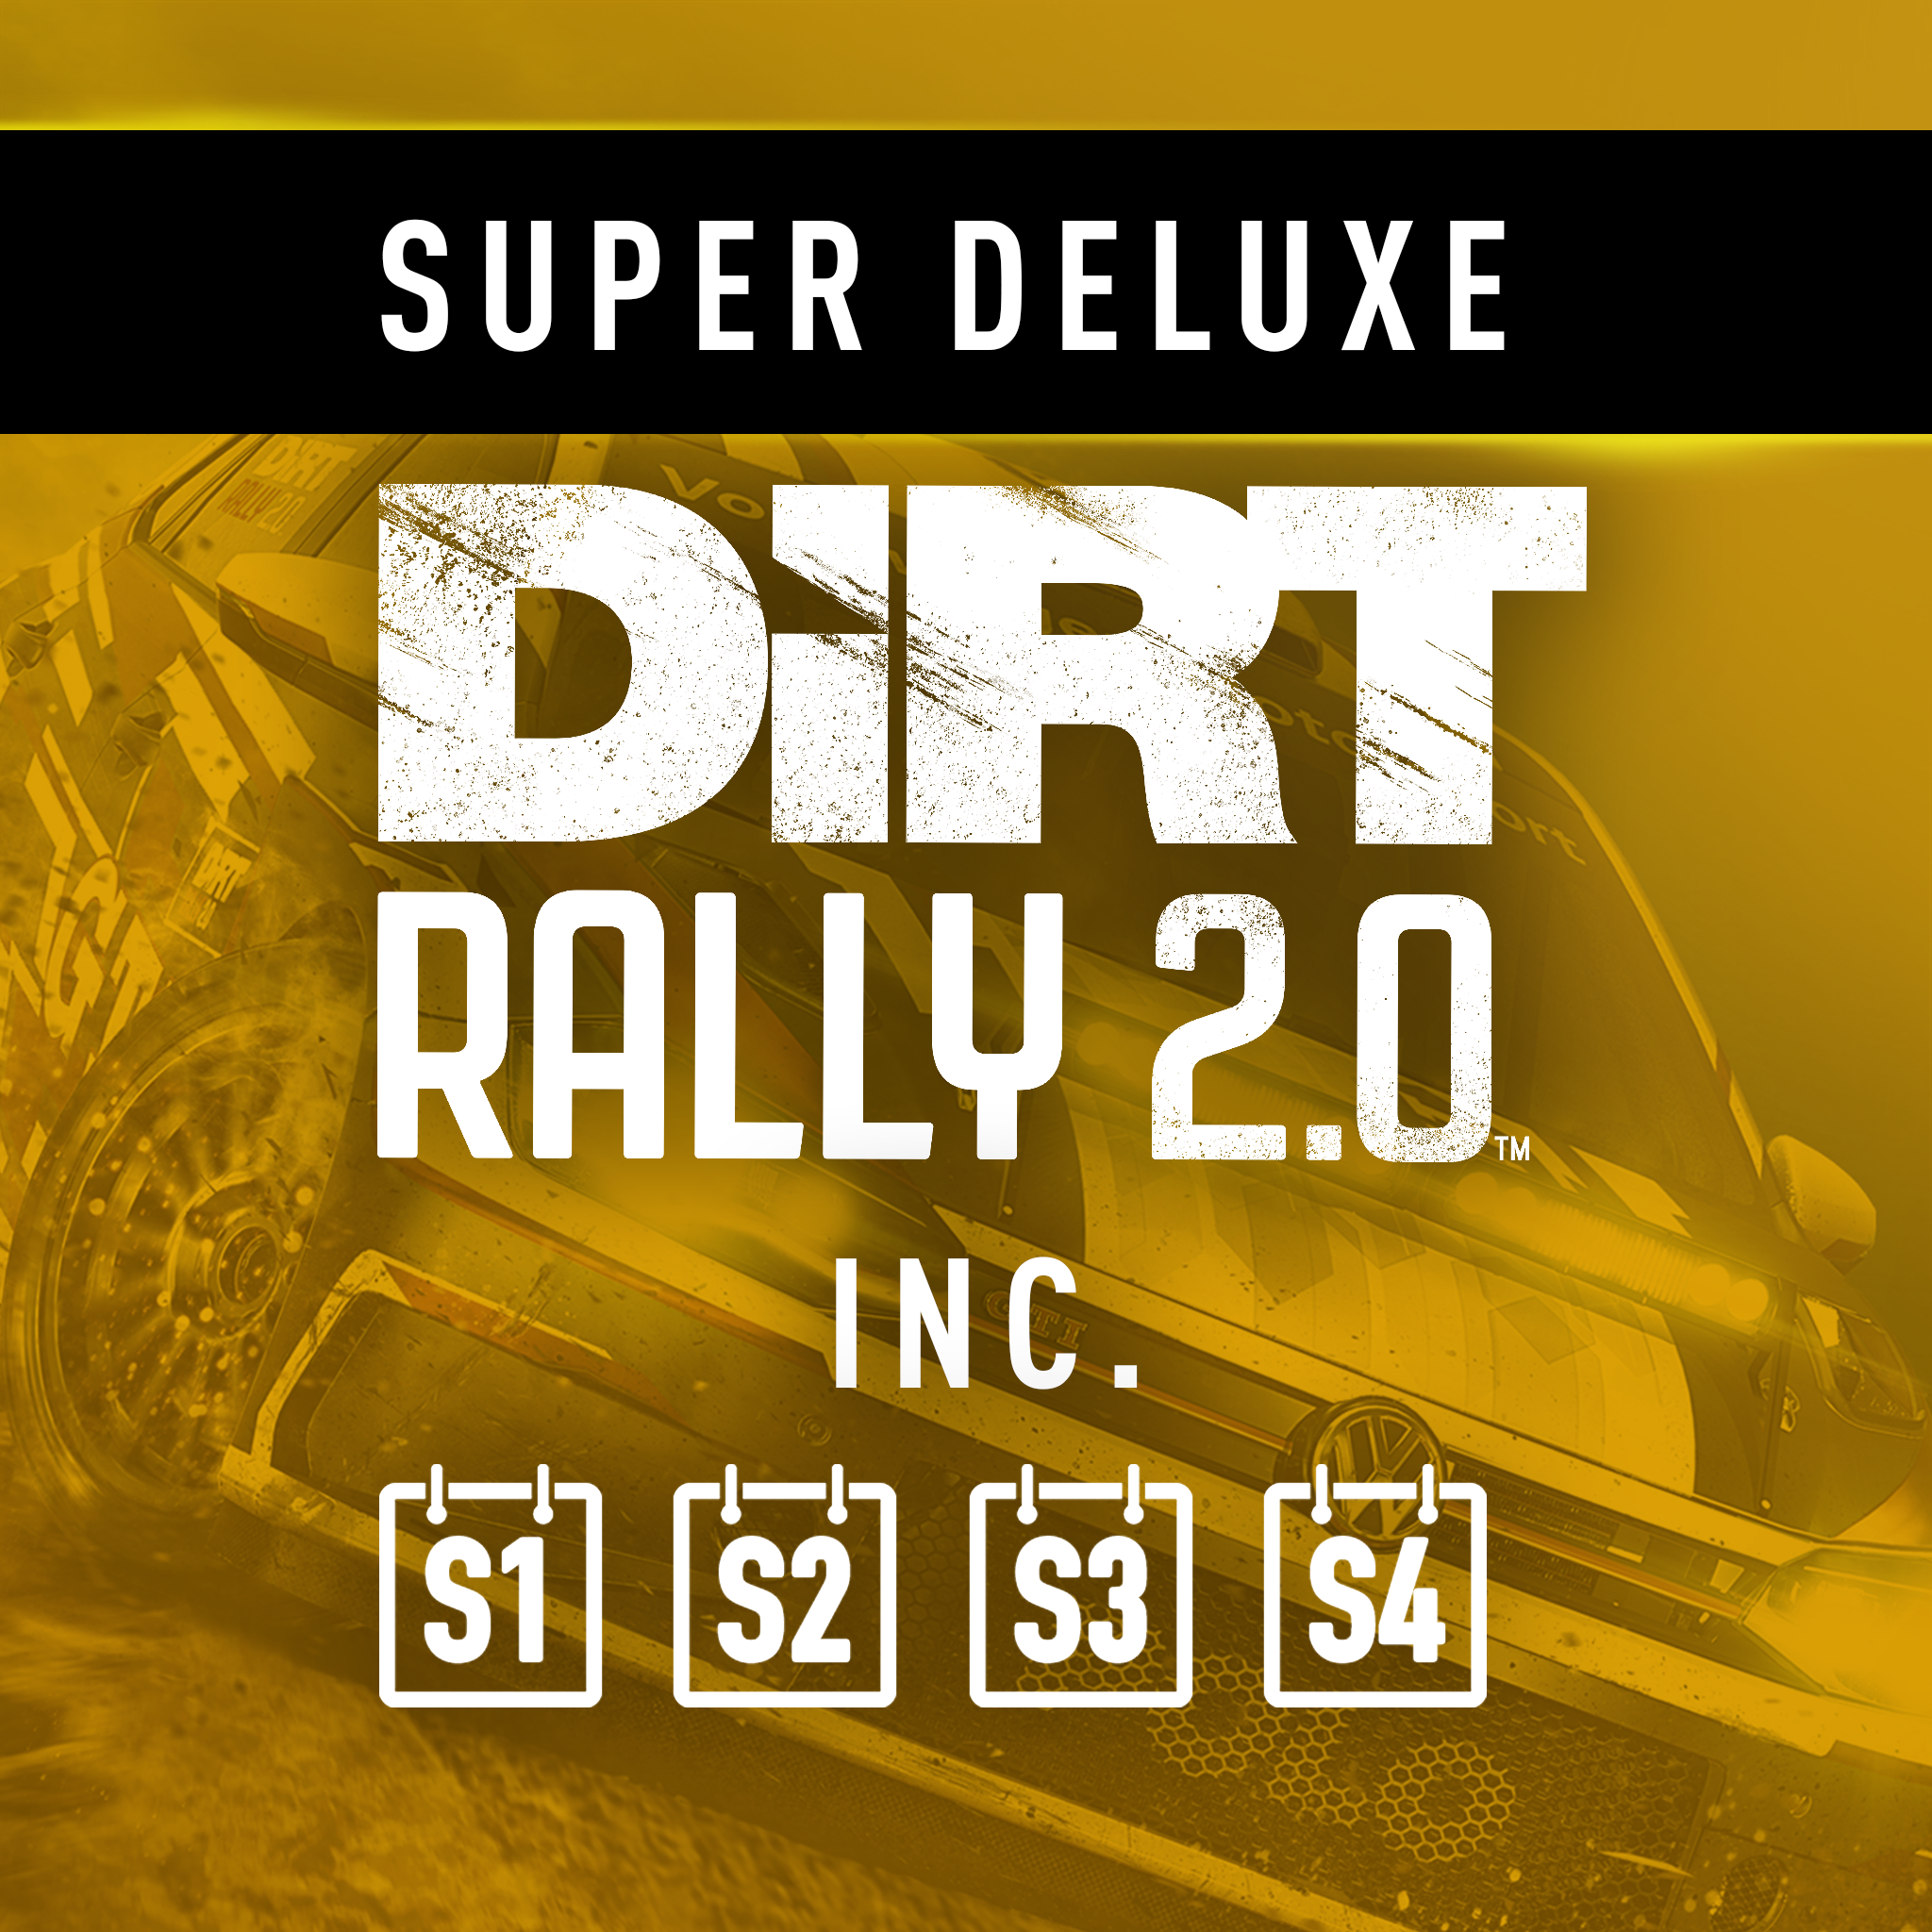 DiRT Rally 2.0 – Super Deluxe Edition